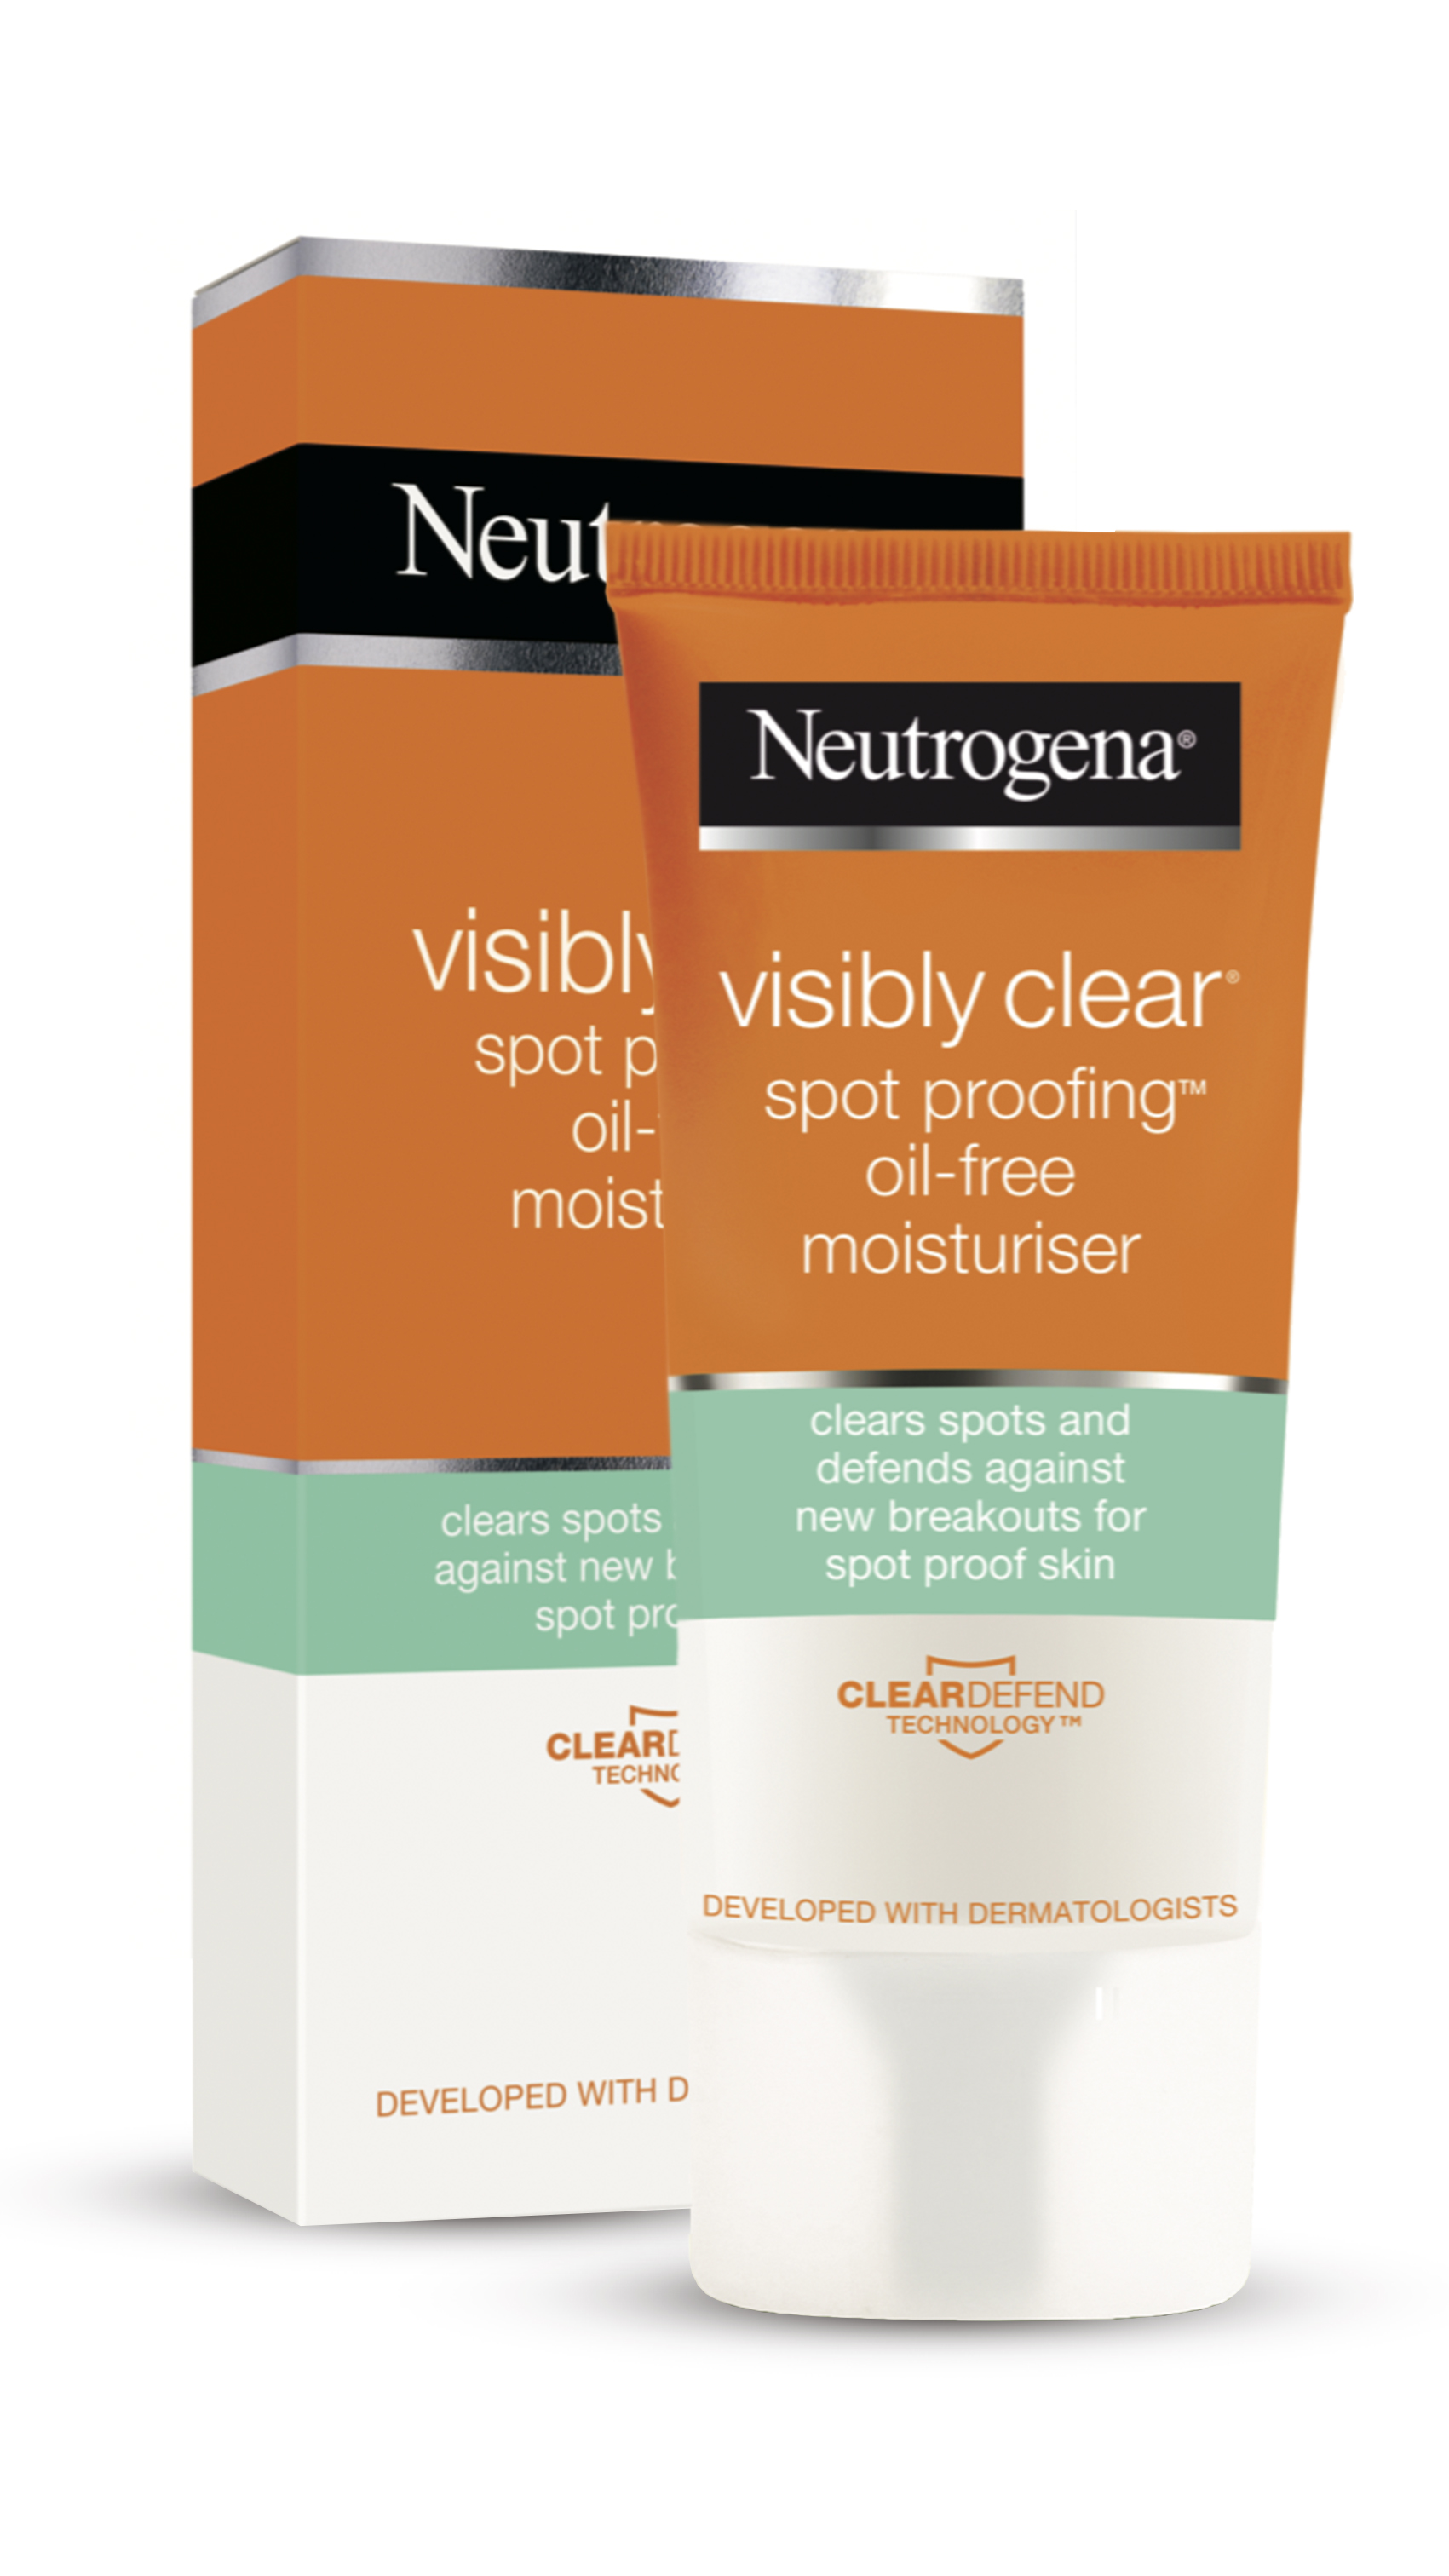 NOWY VisiblyClear PG Moisturiser Pudelko copy